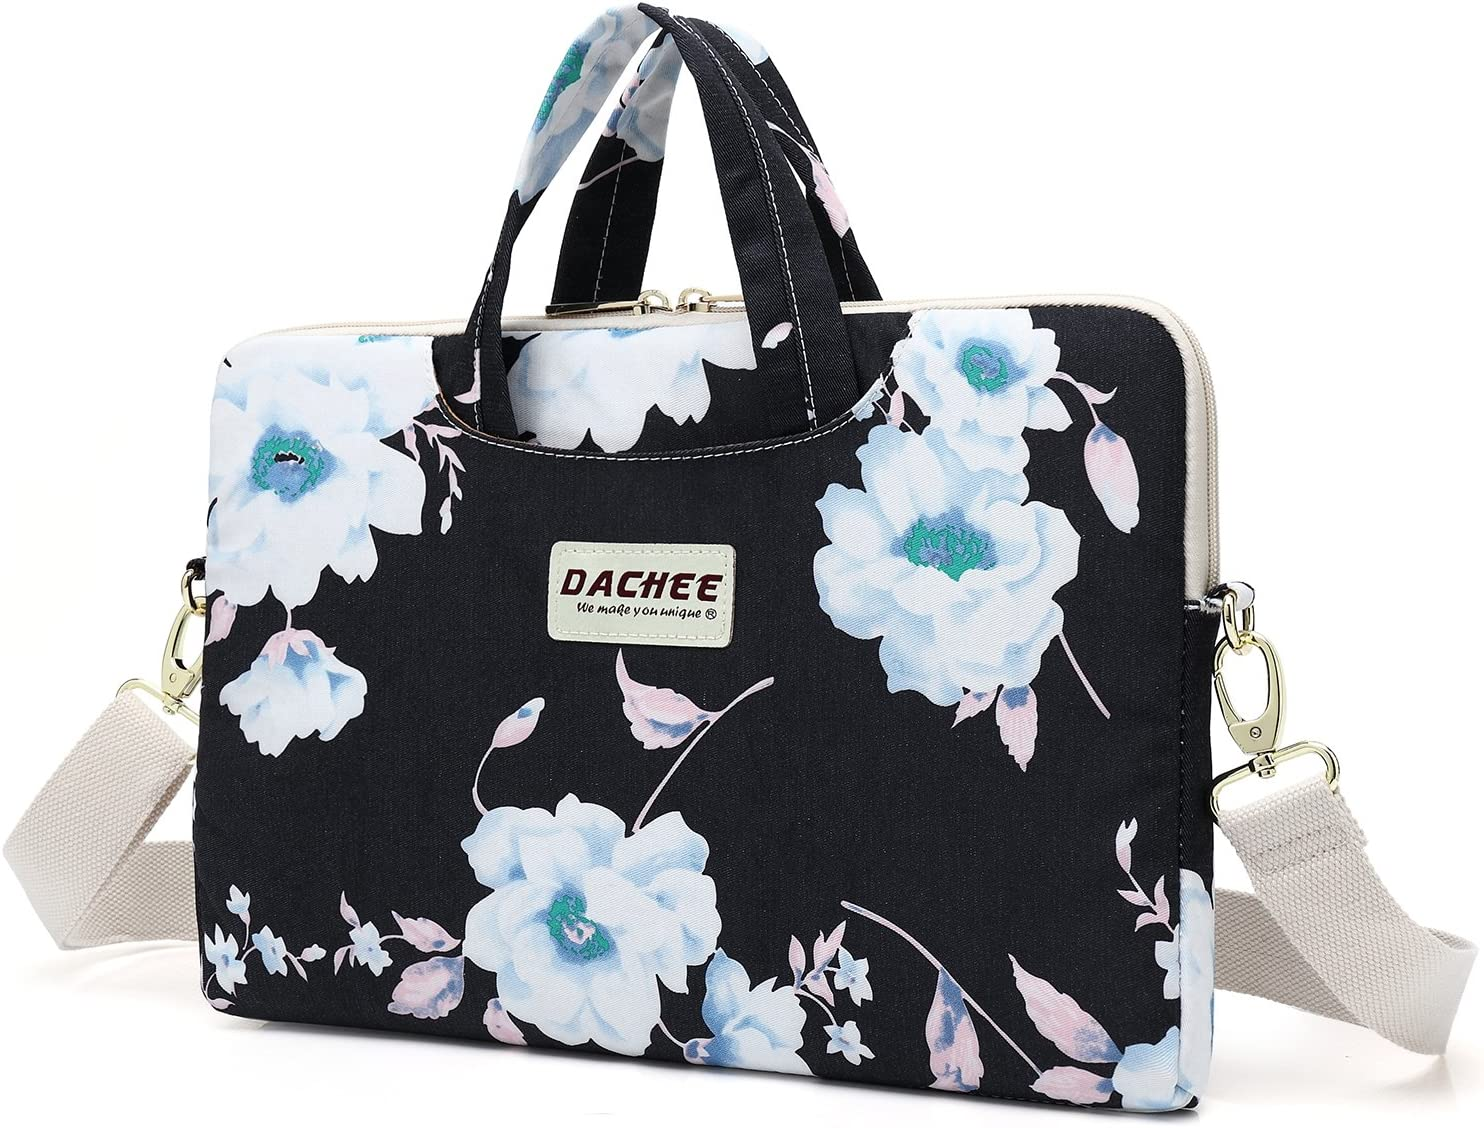 Dachee White Flower Patten Waterproof Laptop Shoulder Messenger Bag Case Sleeve for 11 Inch 12 Inch 13 Inch Laptop